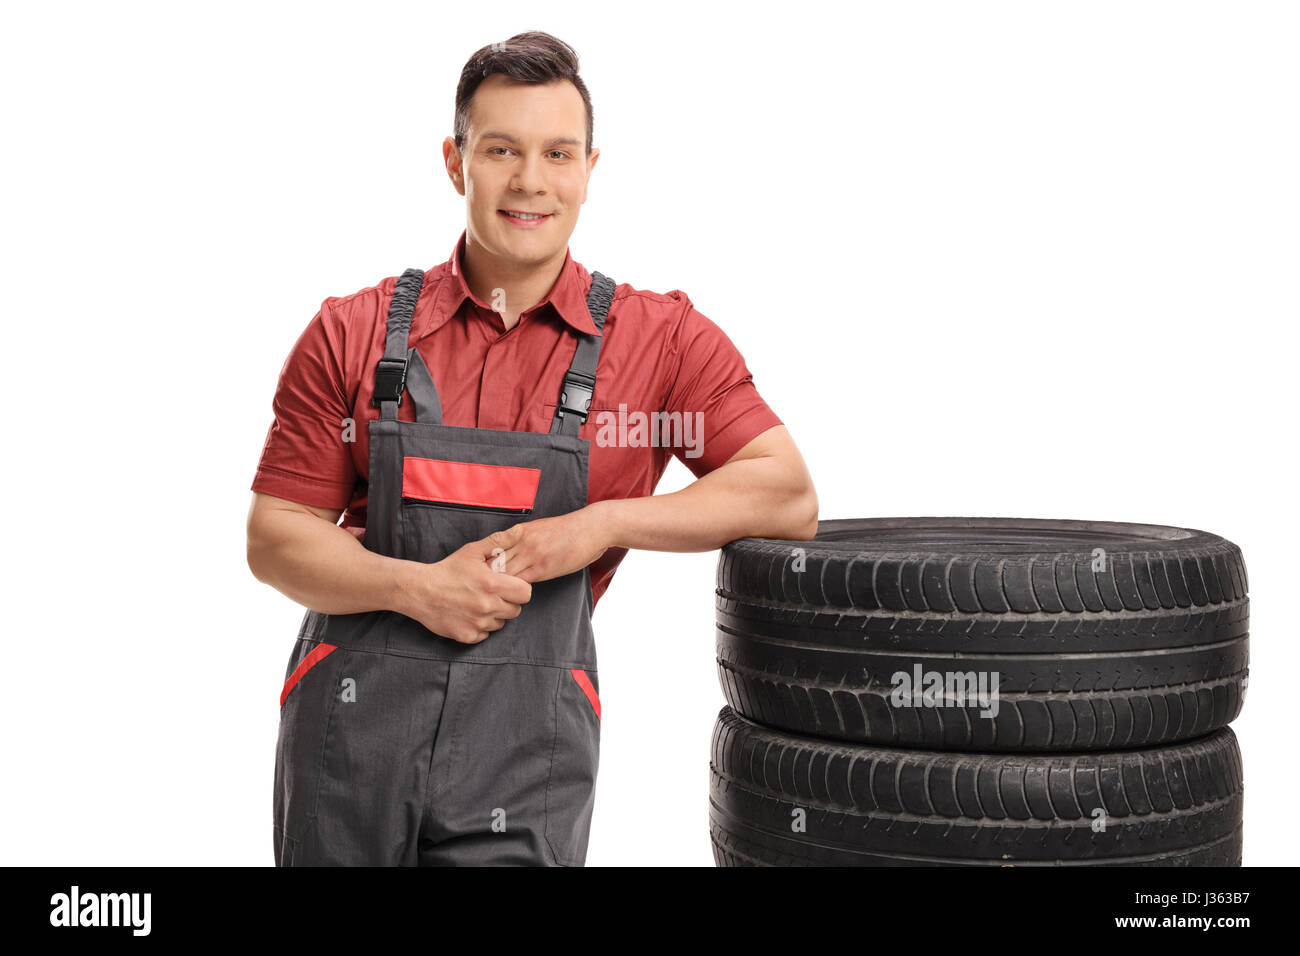 Mechanic leaning on a stack of tires and looking at the camera isolated on white background - Stock Image